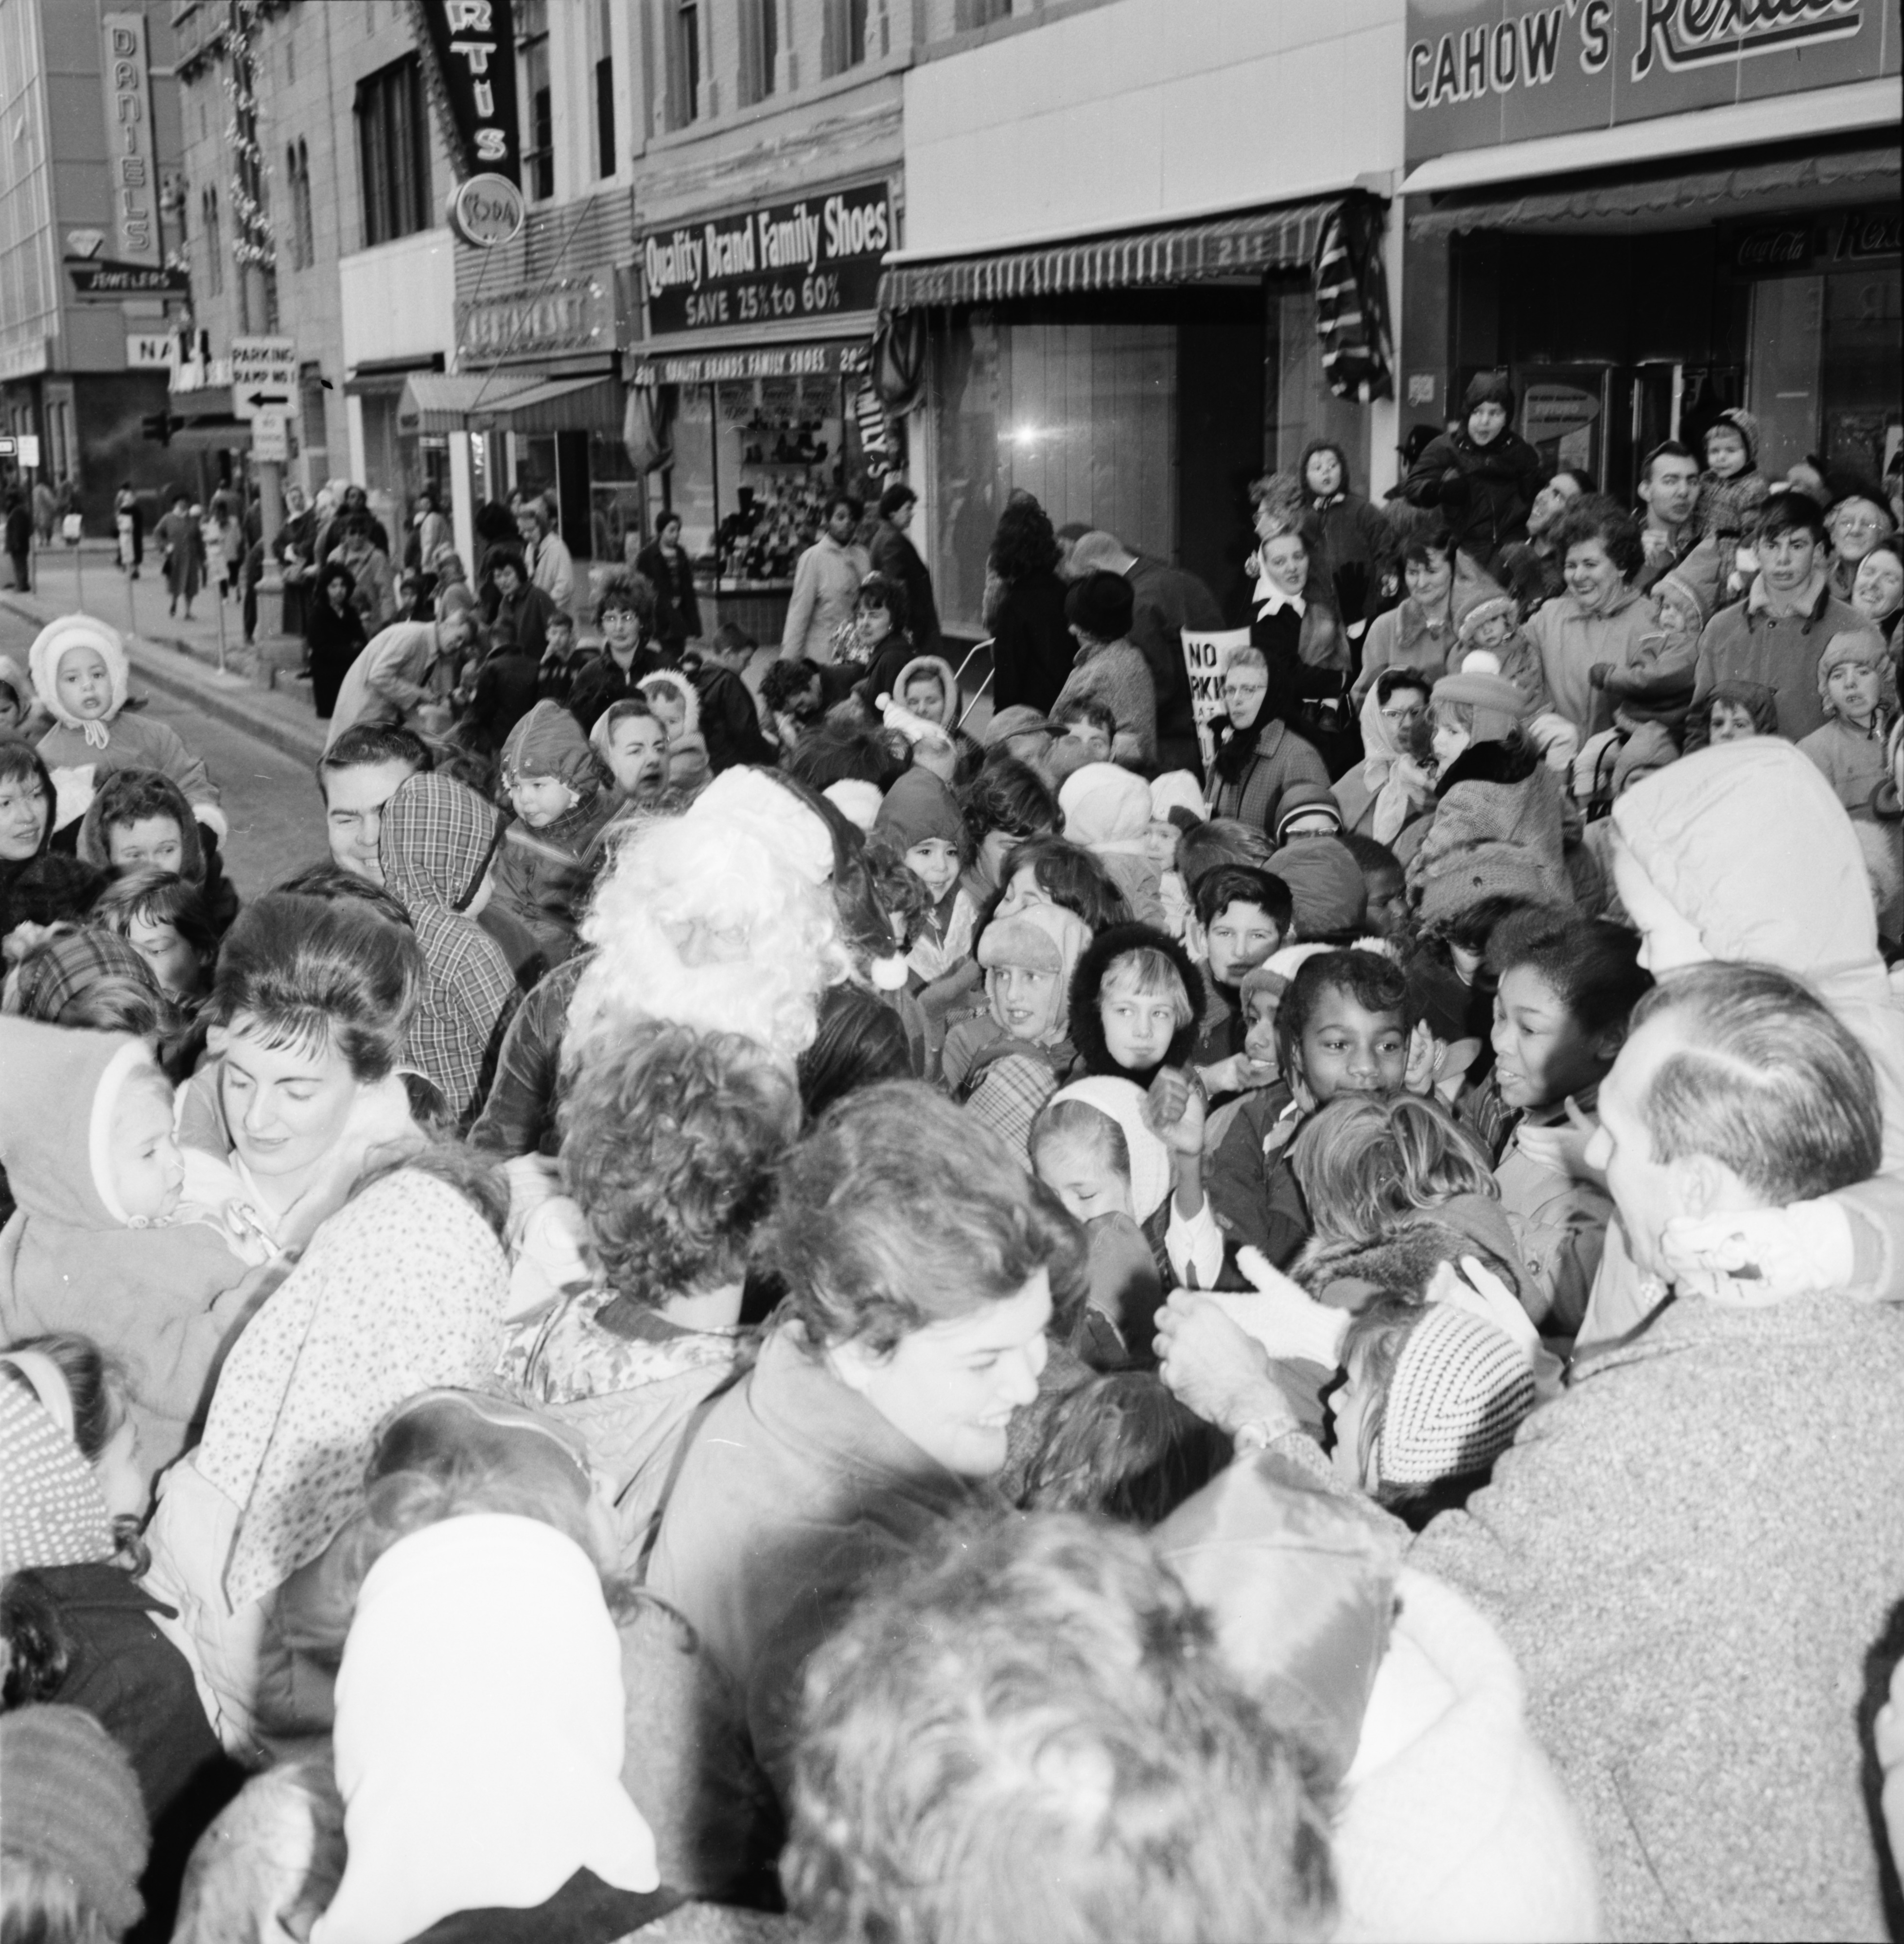 Santa Claus in downtown Ann Arbor, November 1963 image